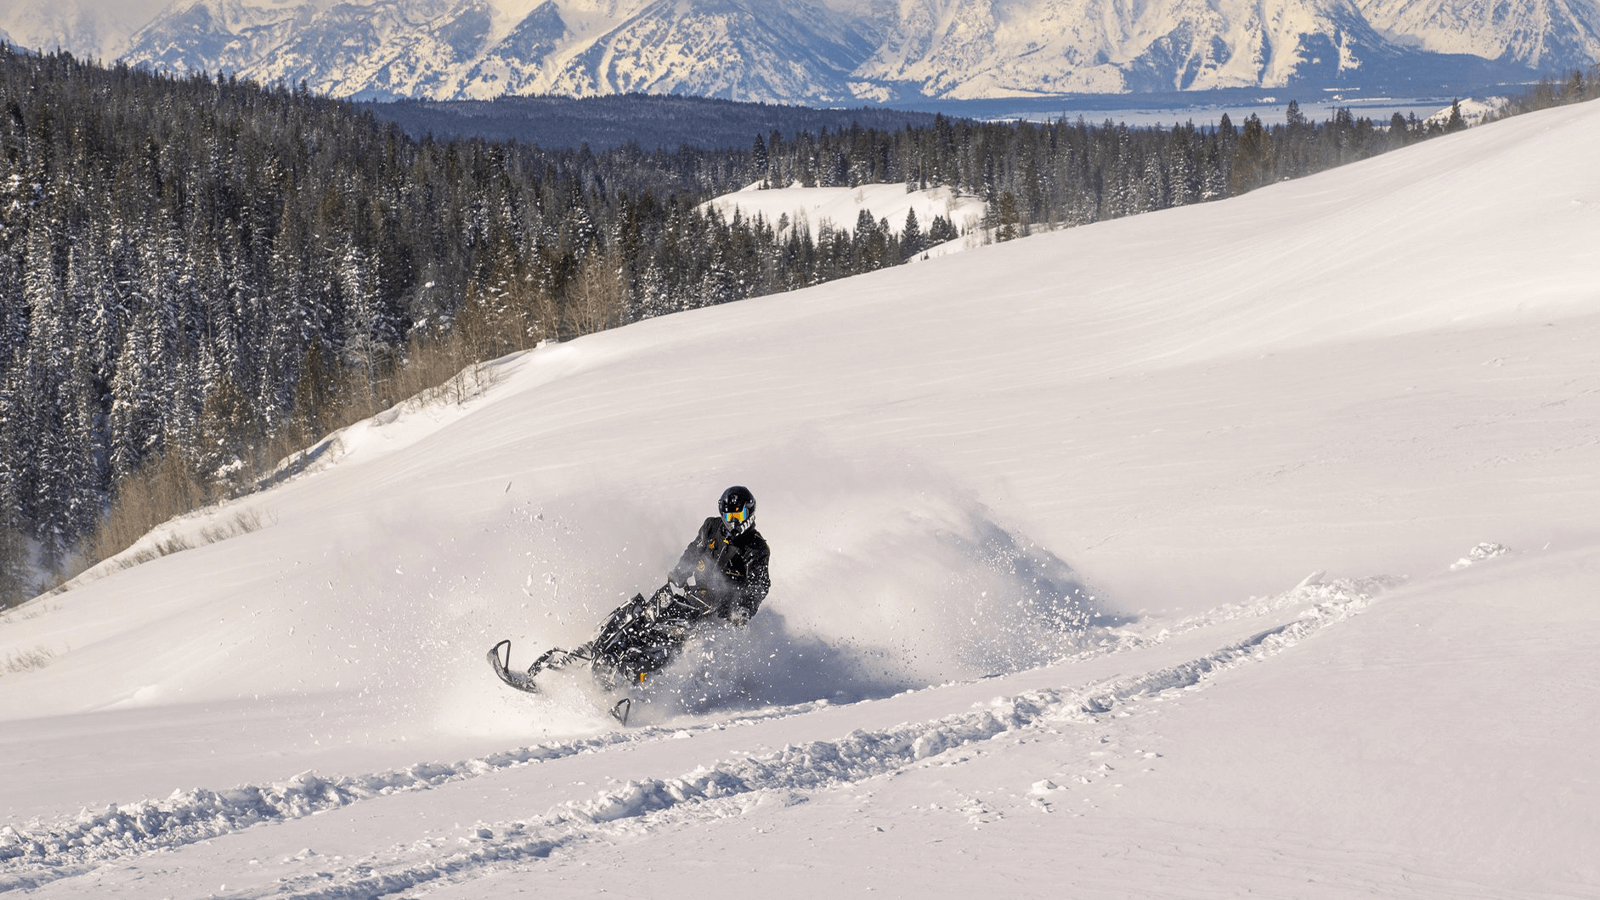 Snowmobiler spraying snow on their turn in the mountains.